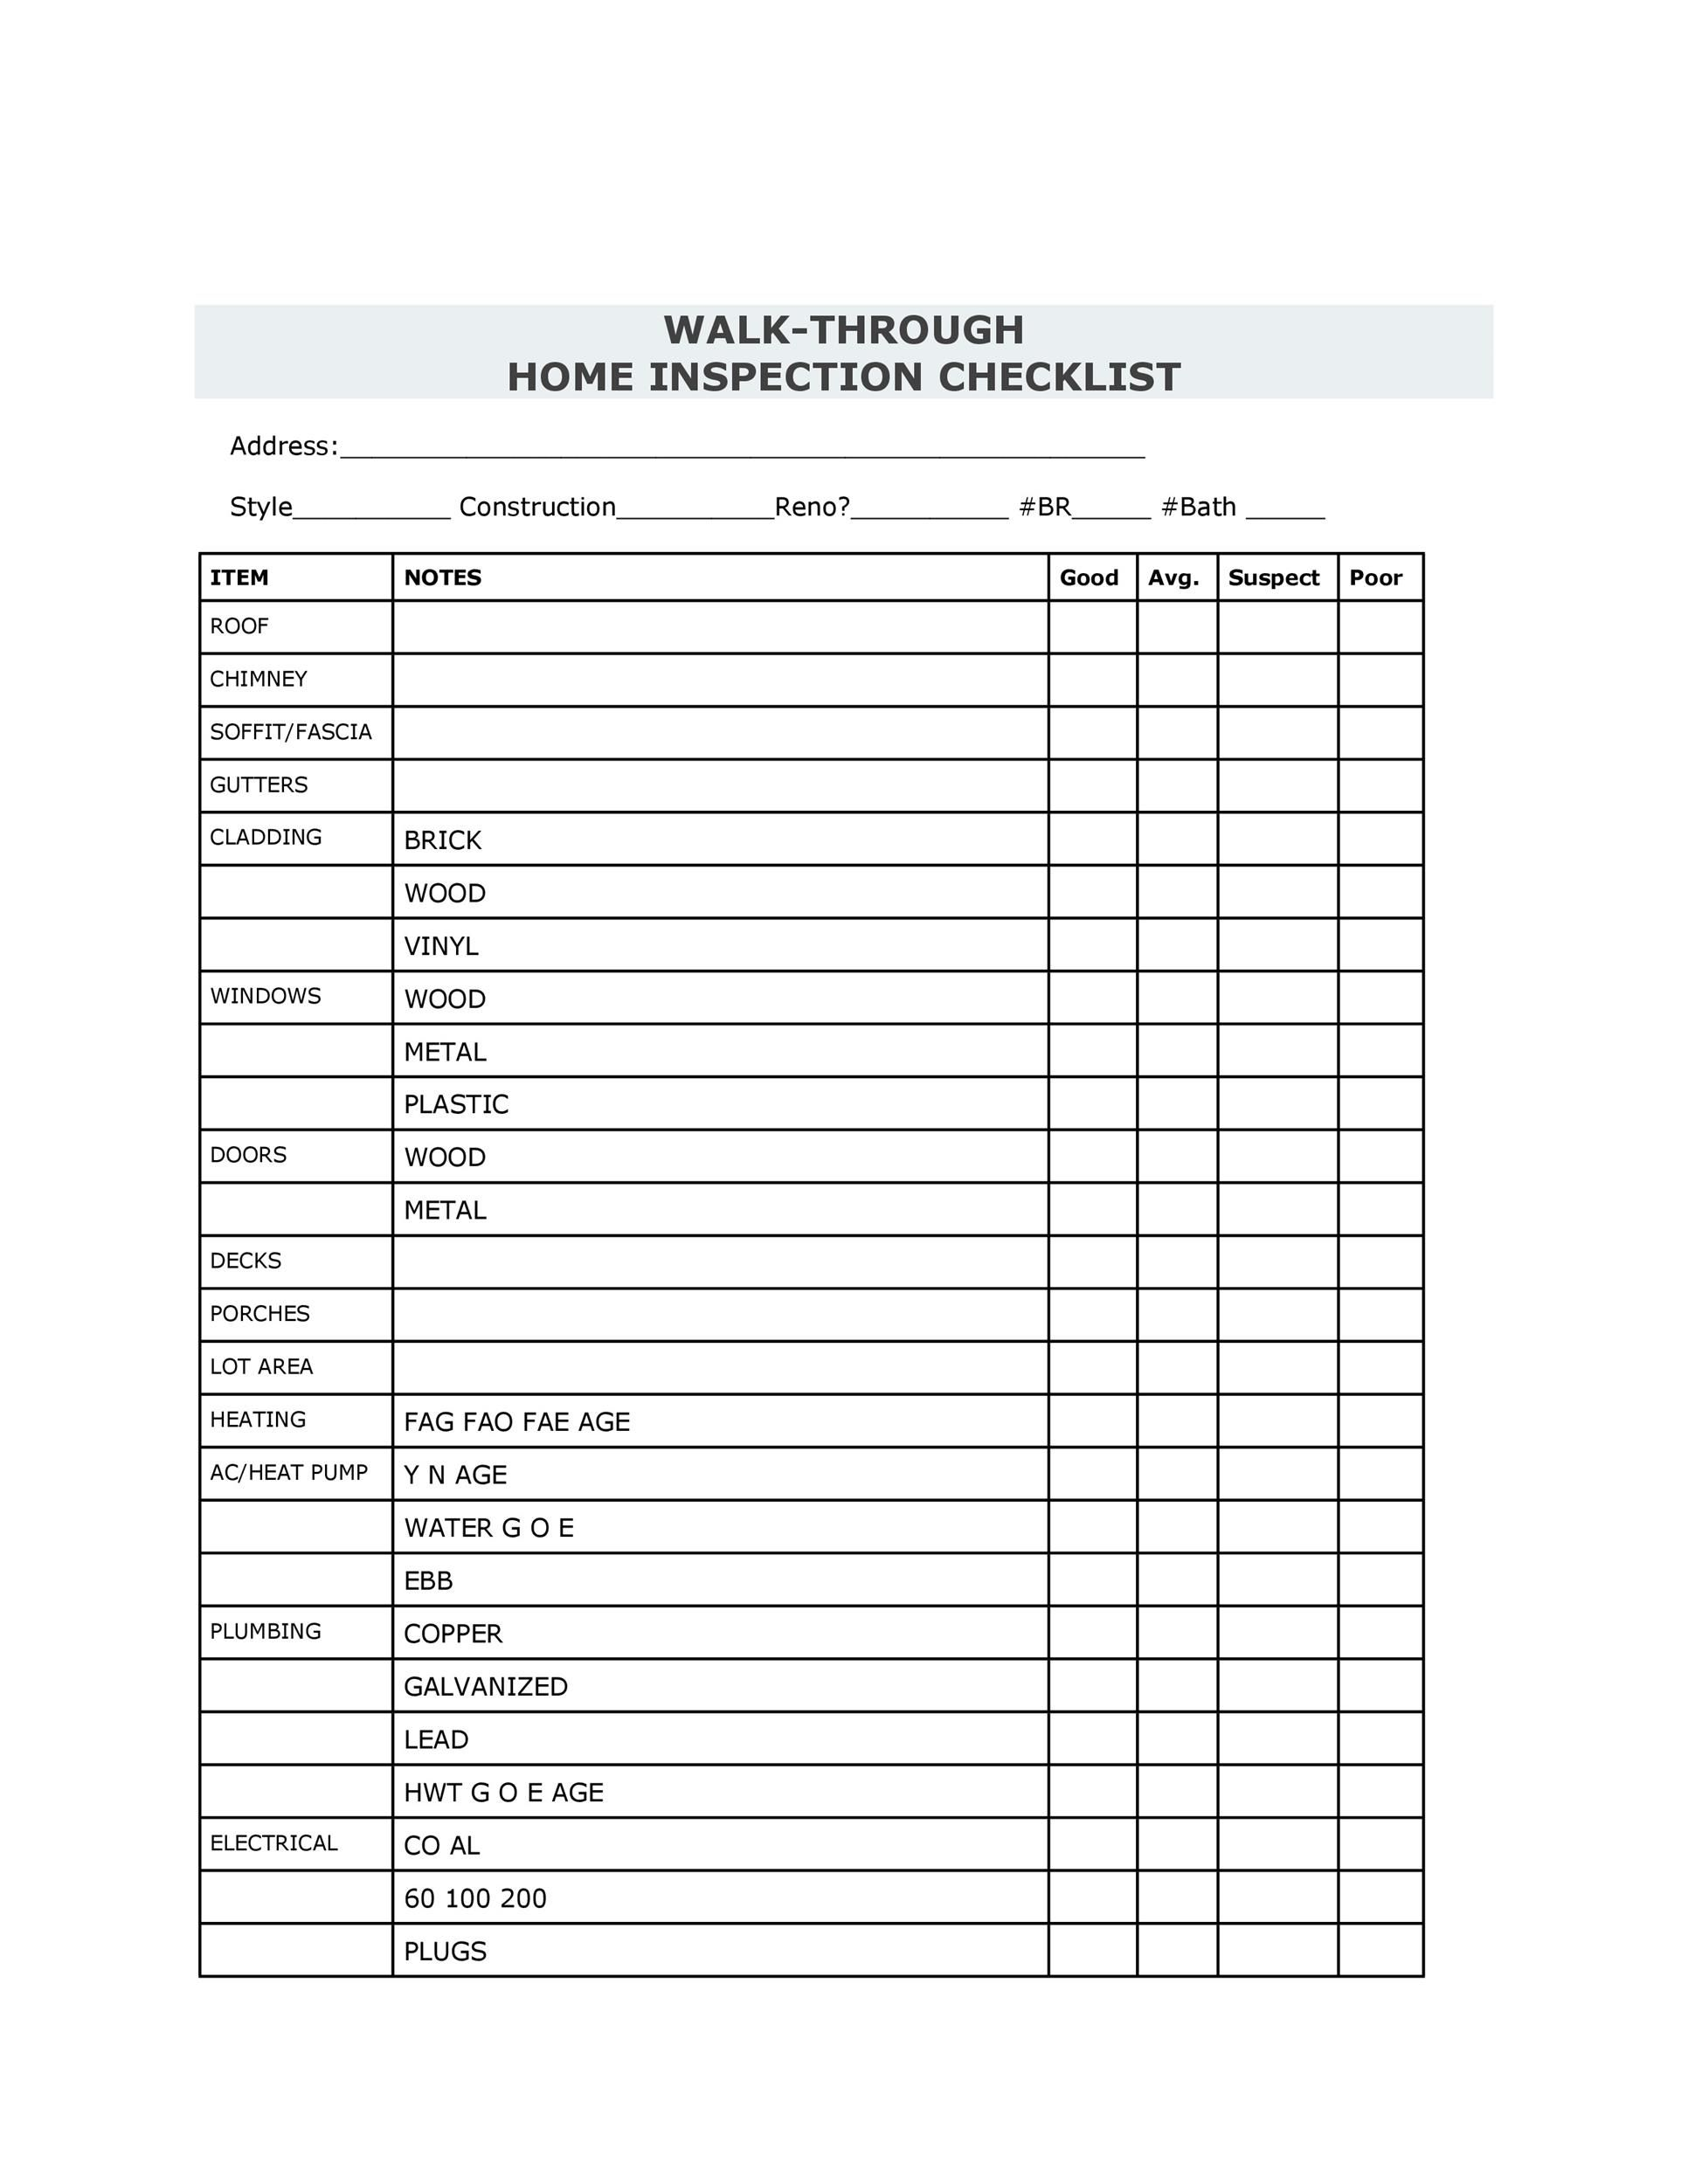 005 Unforgettable Home Inspection Checklist Template Image  New Form FreeFull